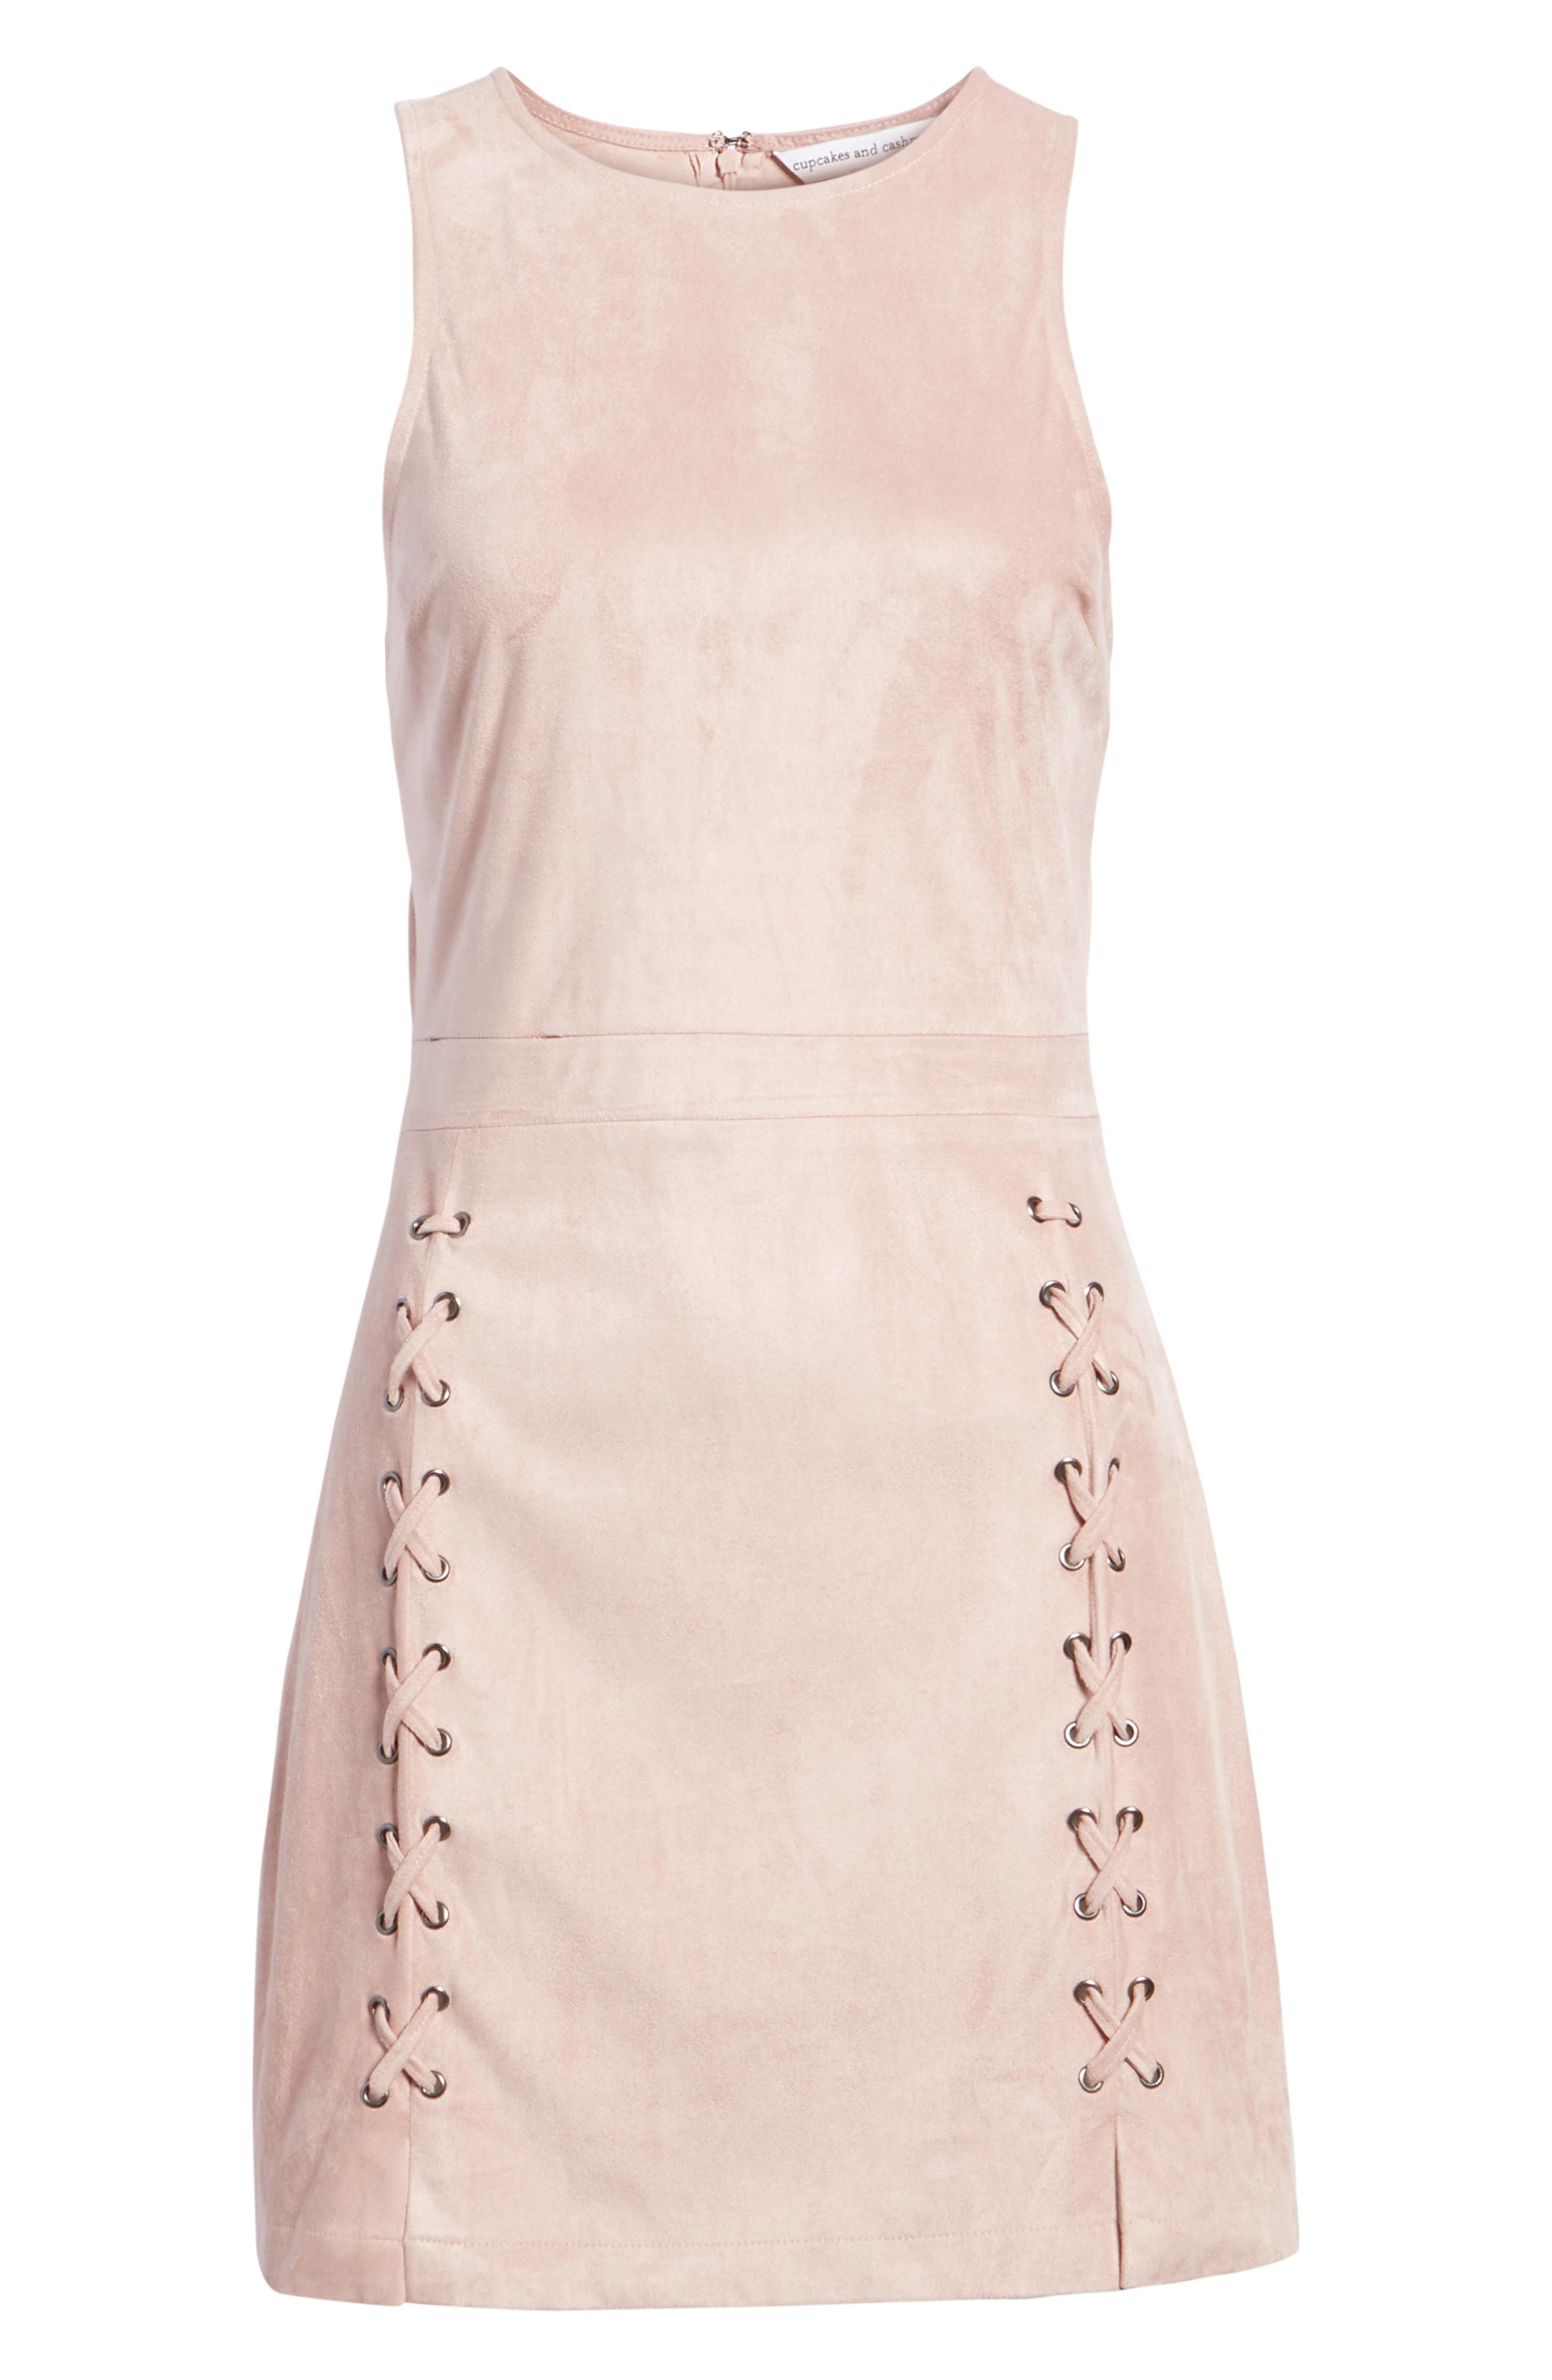 Daton Faux Suede Dress,                             Alternate thumbnail 7, color,                             Nude Pink